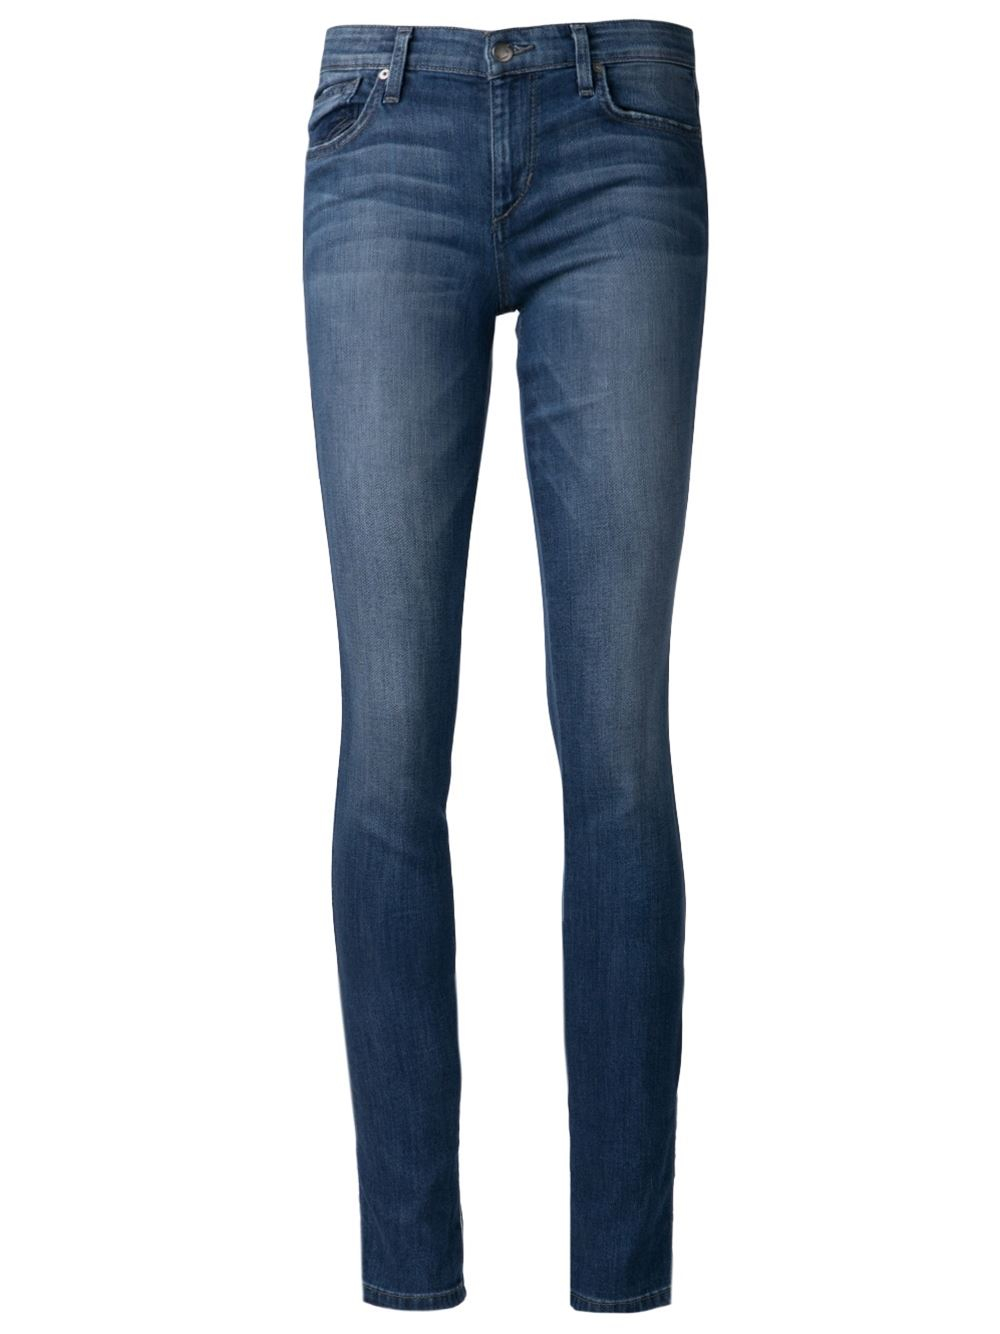 rag & bone/JEAN Low-Rise Skinny Jeans, Equestrian Details rag & bone/JEAN stretch-denim jeans. Five-pocket style. Low rise. Fitted through skinny legs. Cropped just above the ankles. Button/zip fly; belt loops. Cotton/nylon/spandex. Made in USA of imported materials.